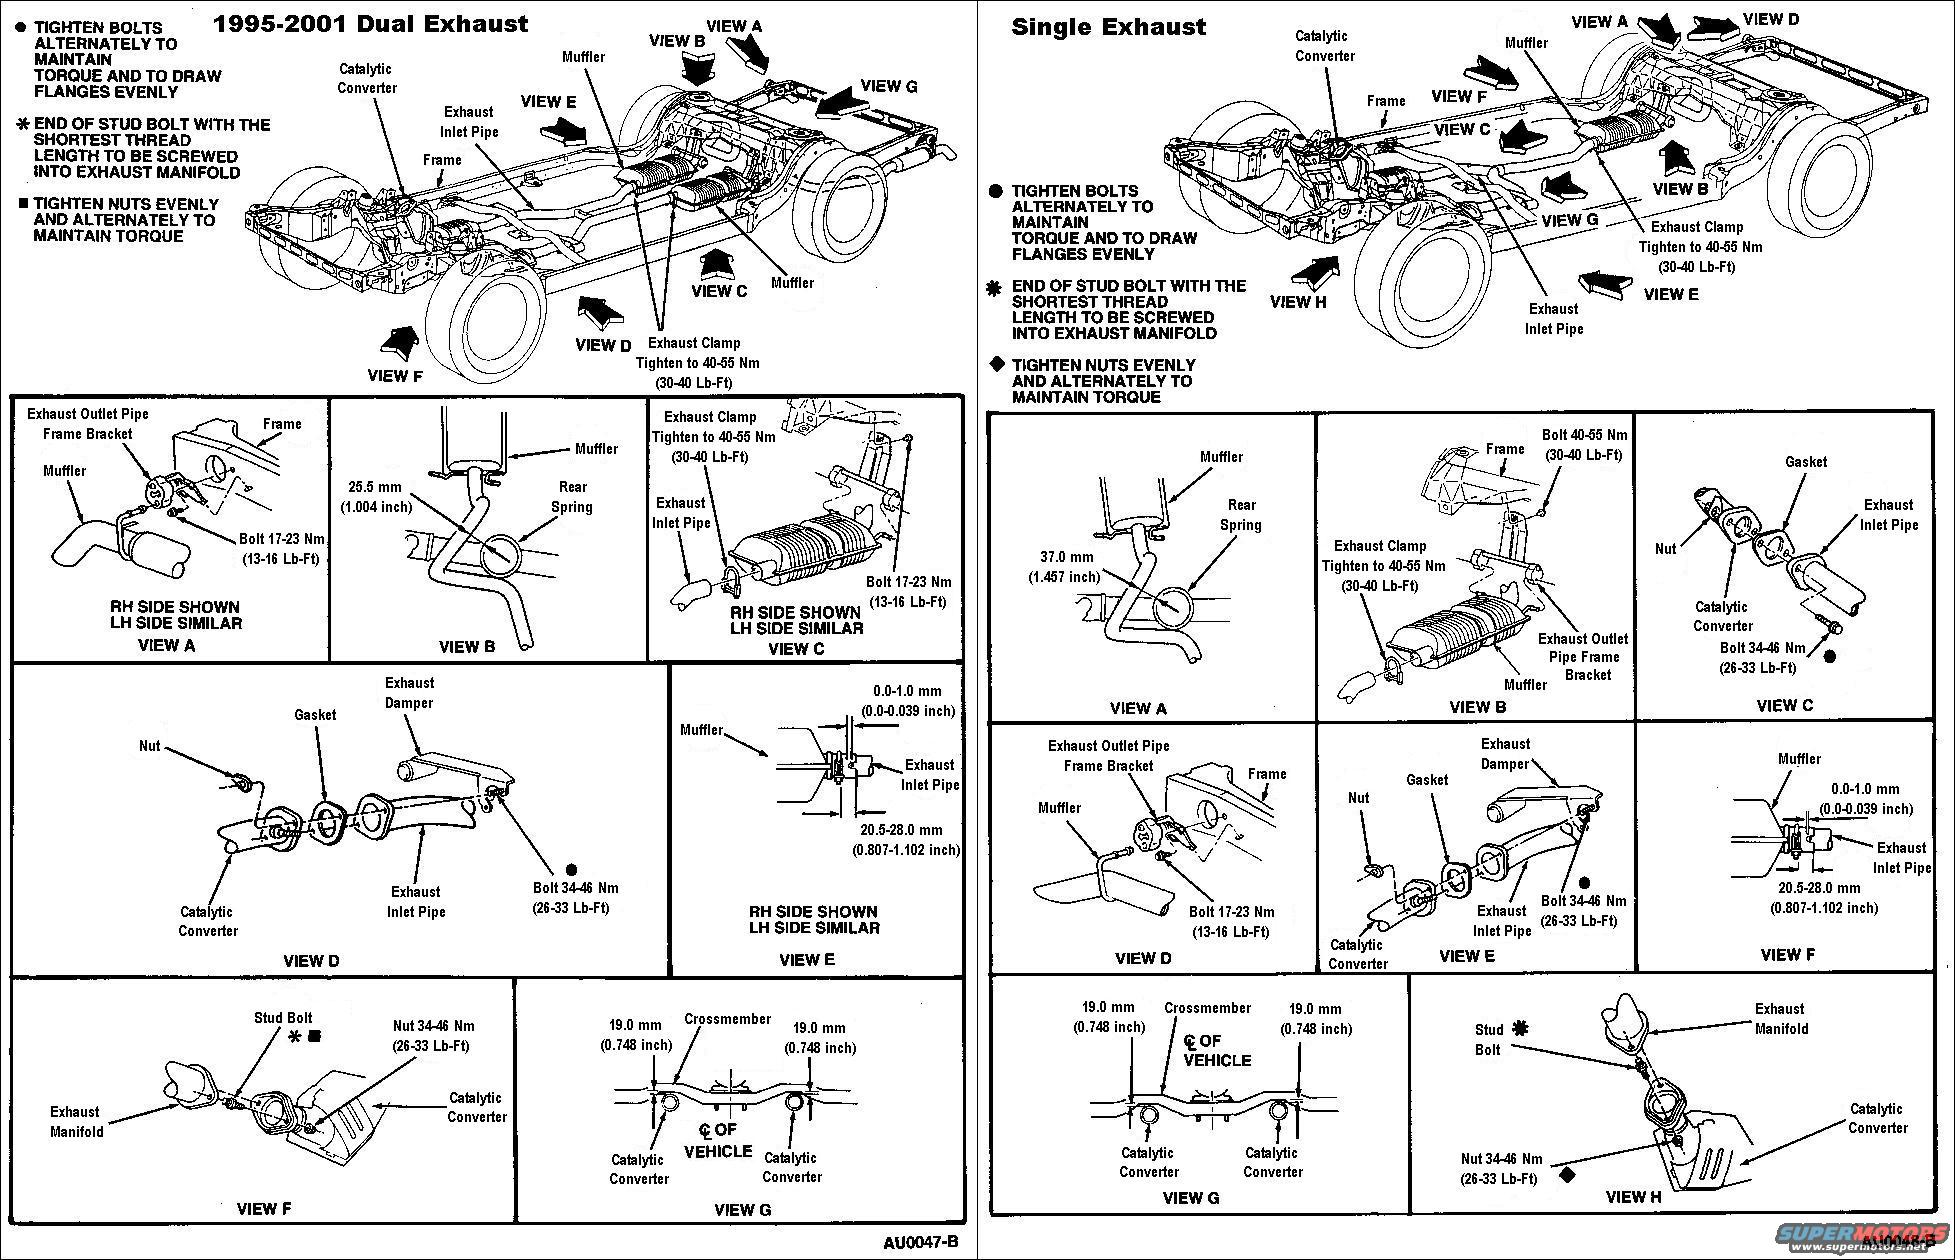 1994 ford crown victoria diagrams picture | supermotors.net 2008 ford crown victoria fuel pump wiring diagram 95 crown victoria fuel wire diagram overhead